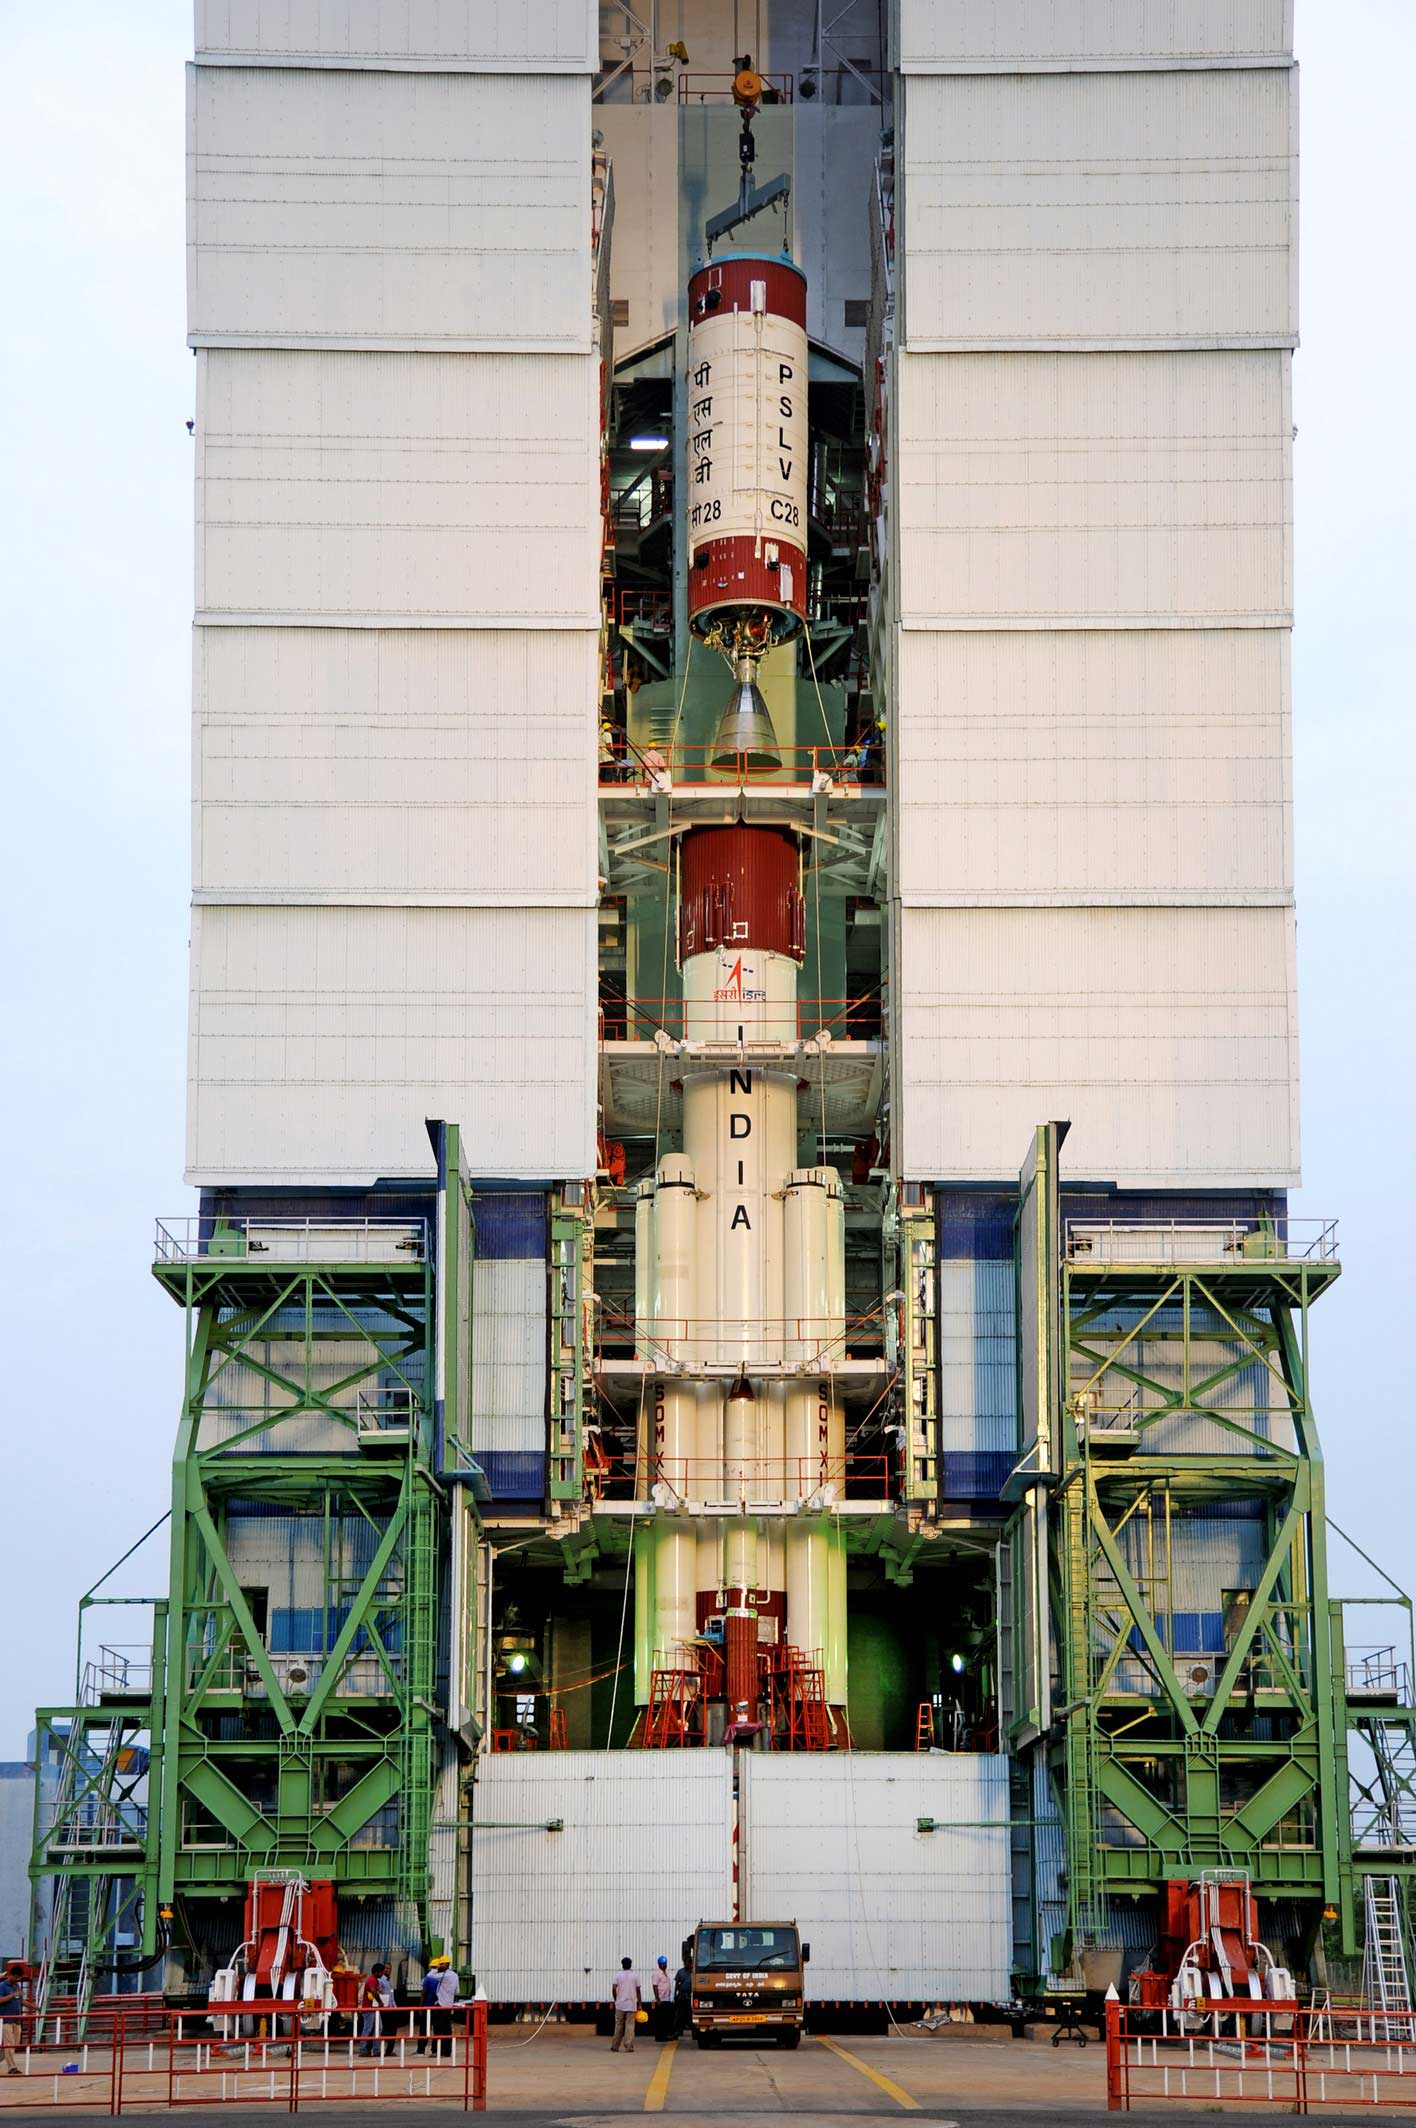 The PSLV's second stage is hoisted onto the rocket during stacking operations at the Satish Dhawan Space Center on India's east coast. Credit: ISRO